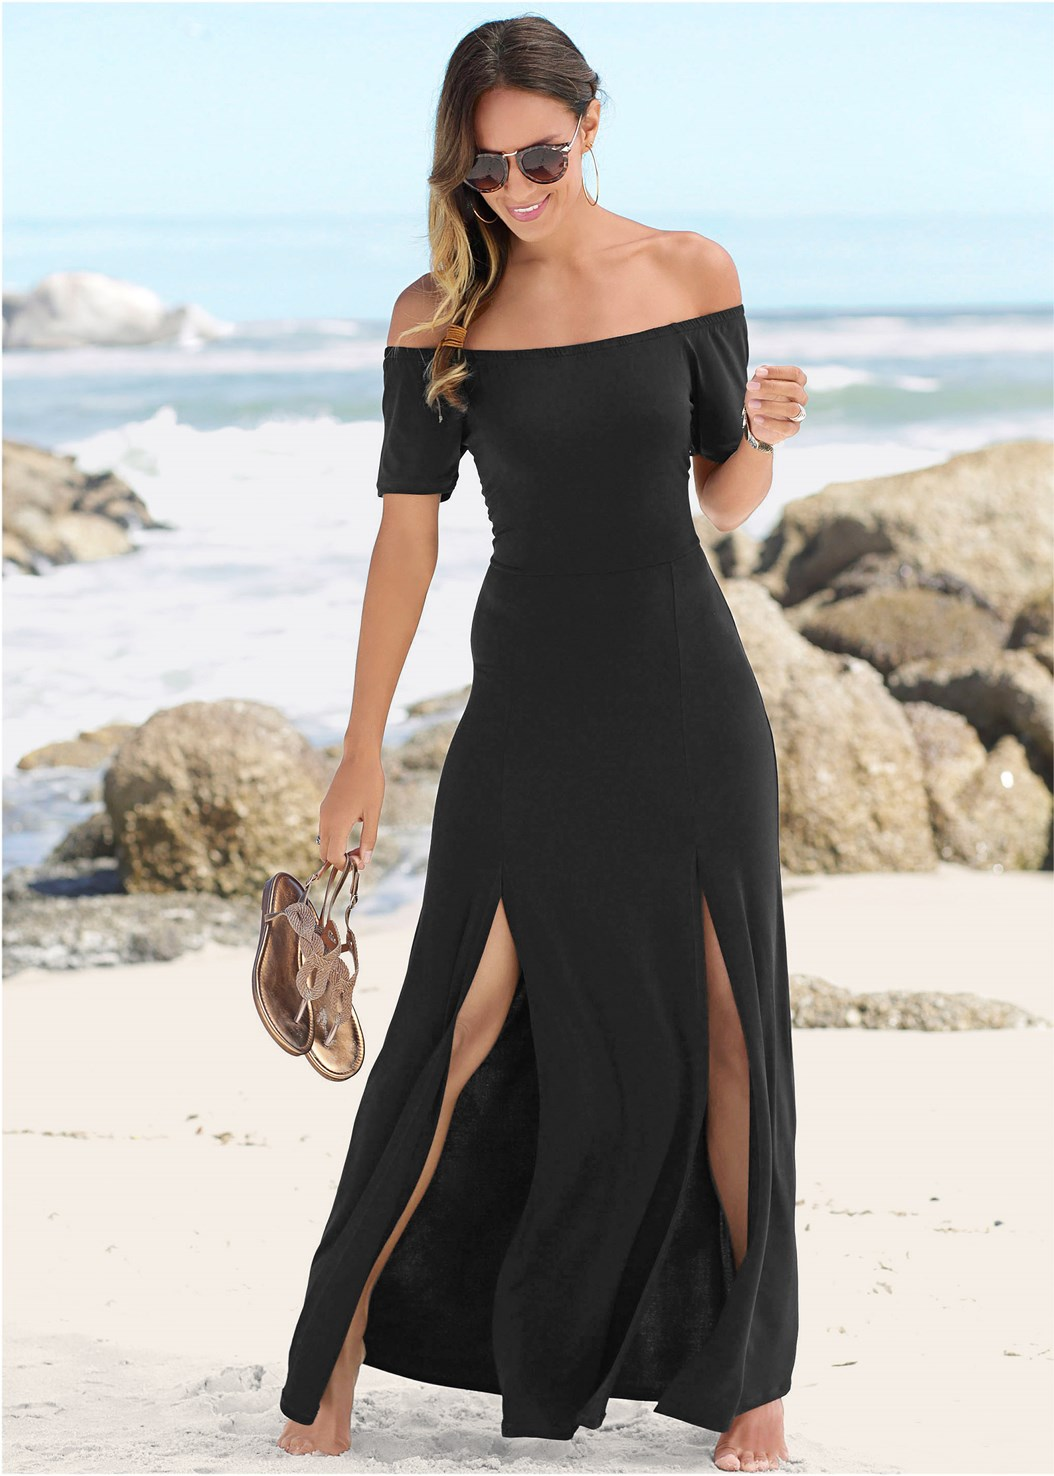 Slit Detail Maxi Dress,Full Figure Strapless Bra,Metallic Strap Sandals,Long Link Necklace,Circular Straw Bag,Beaded Crossbody